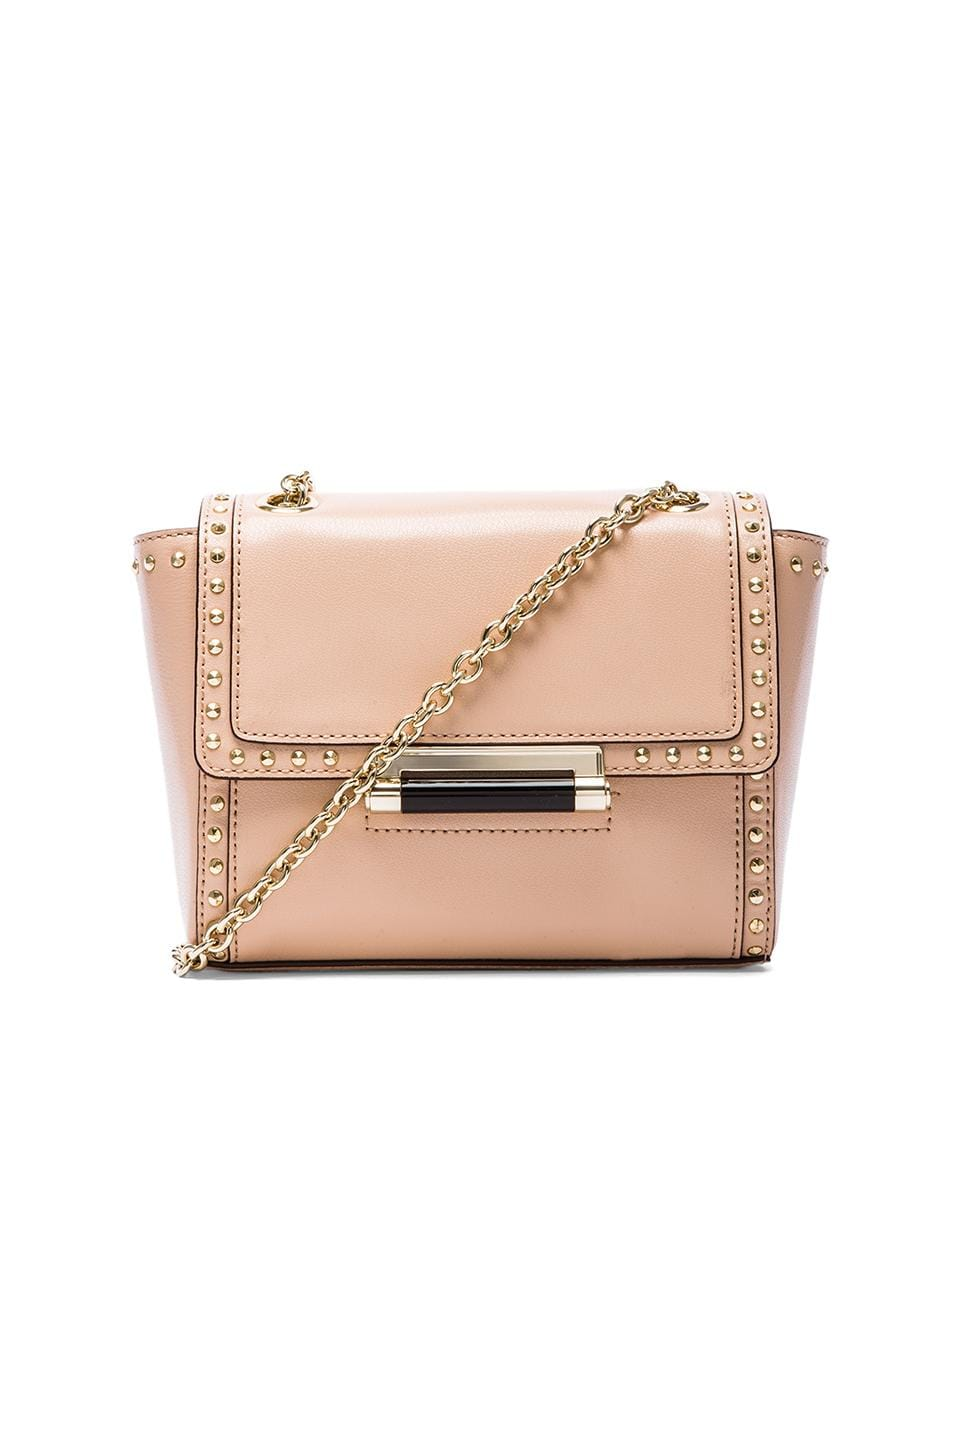 Diane von Furstenberg Mini Faceted Stud Crossbody Bag in Vachetta